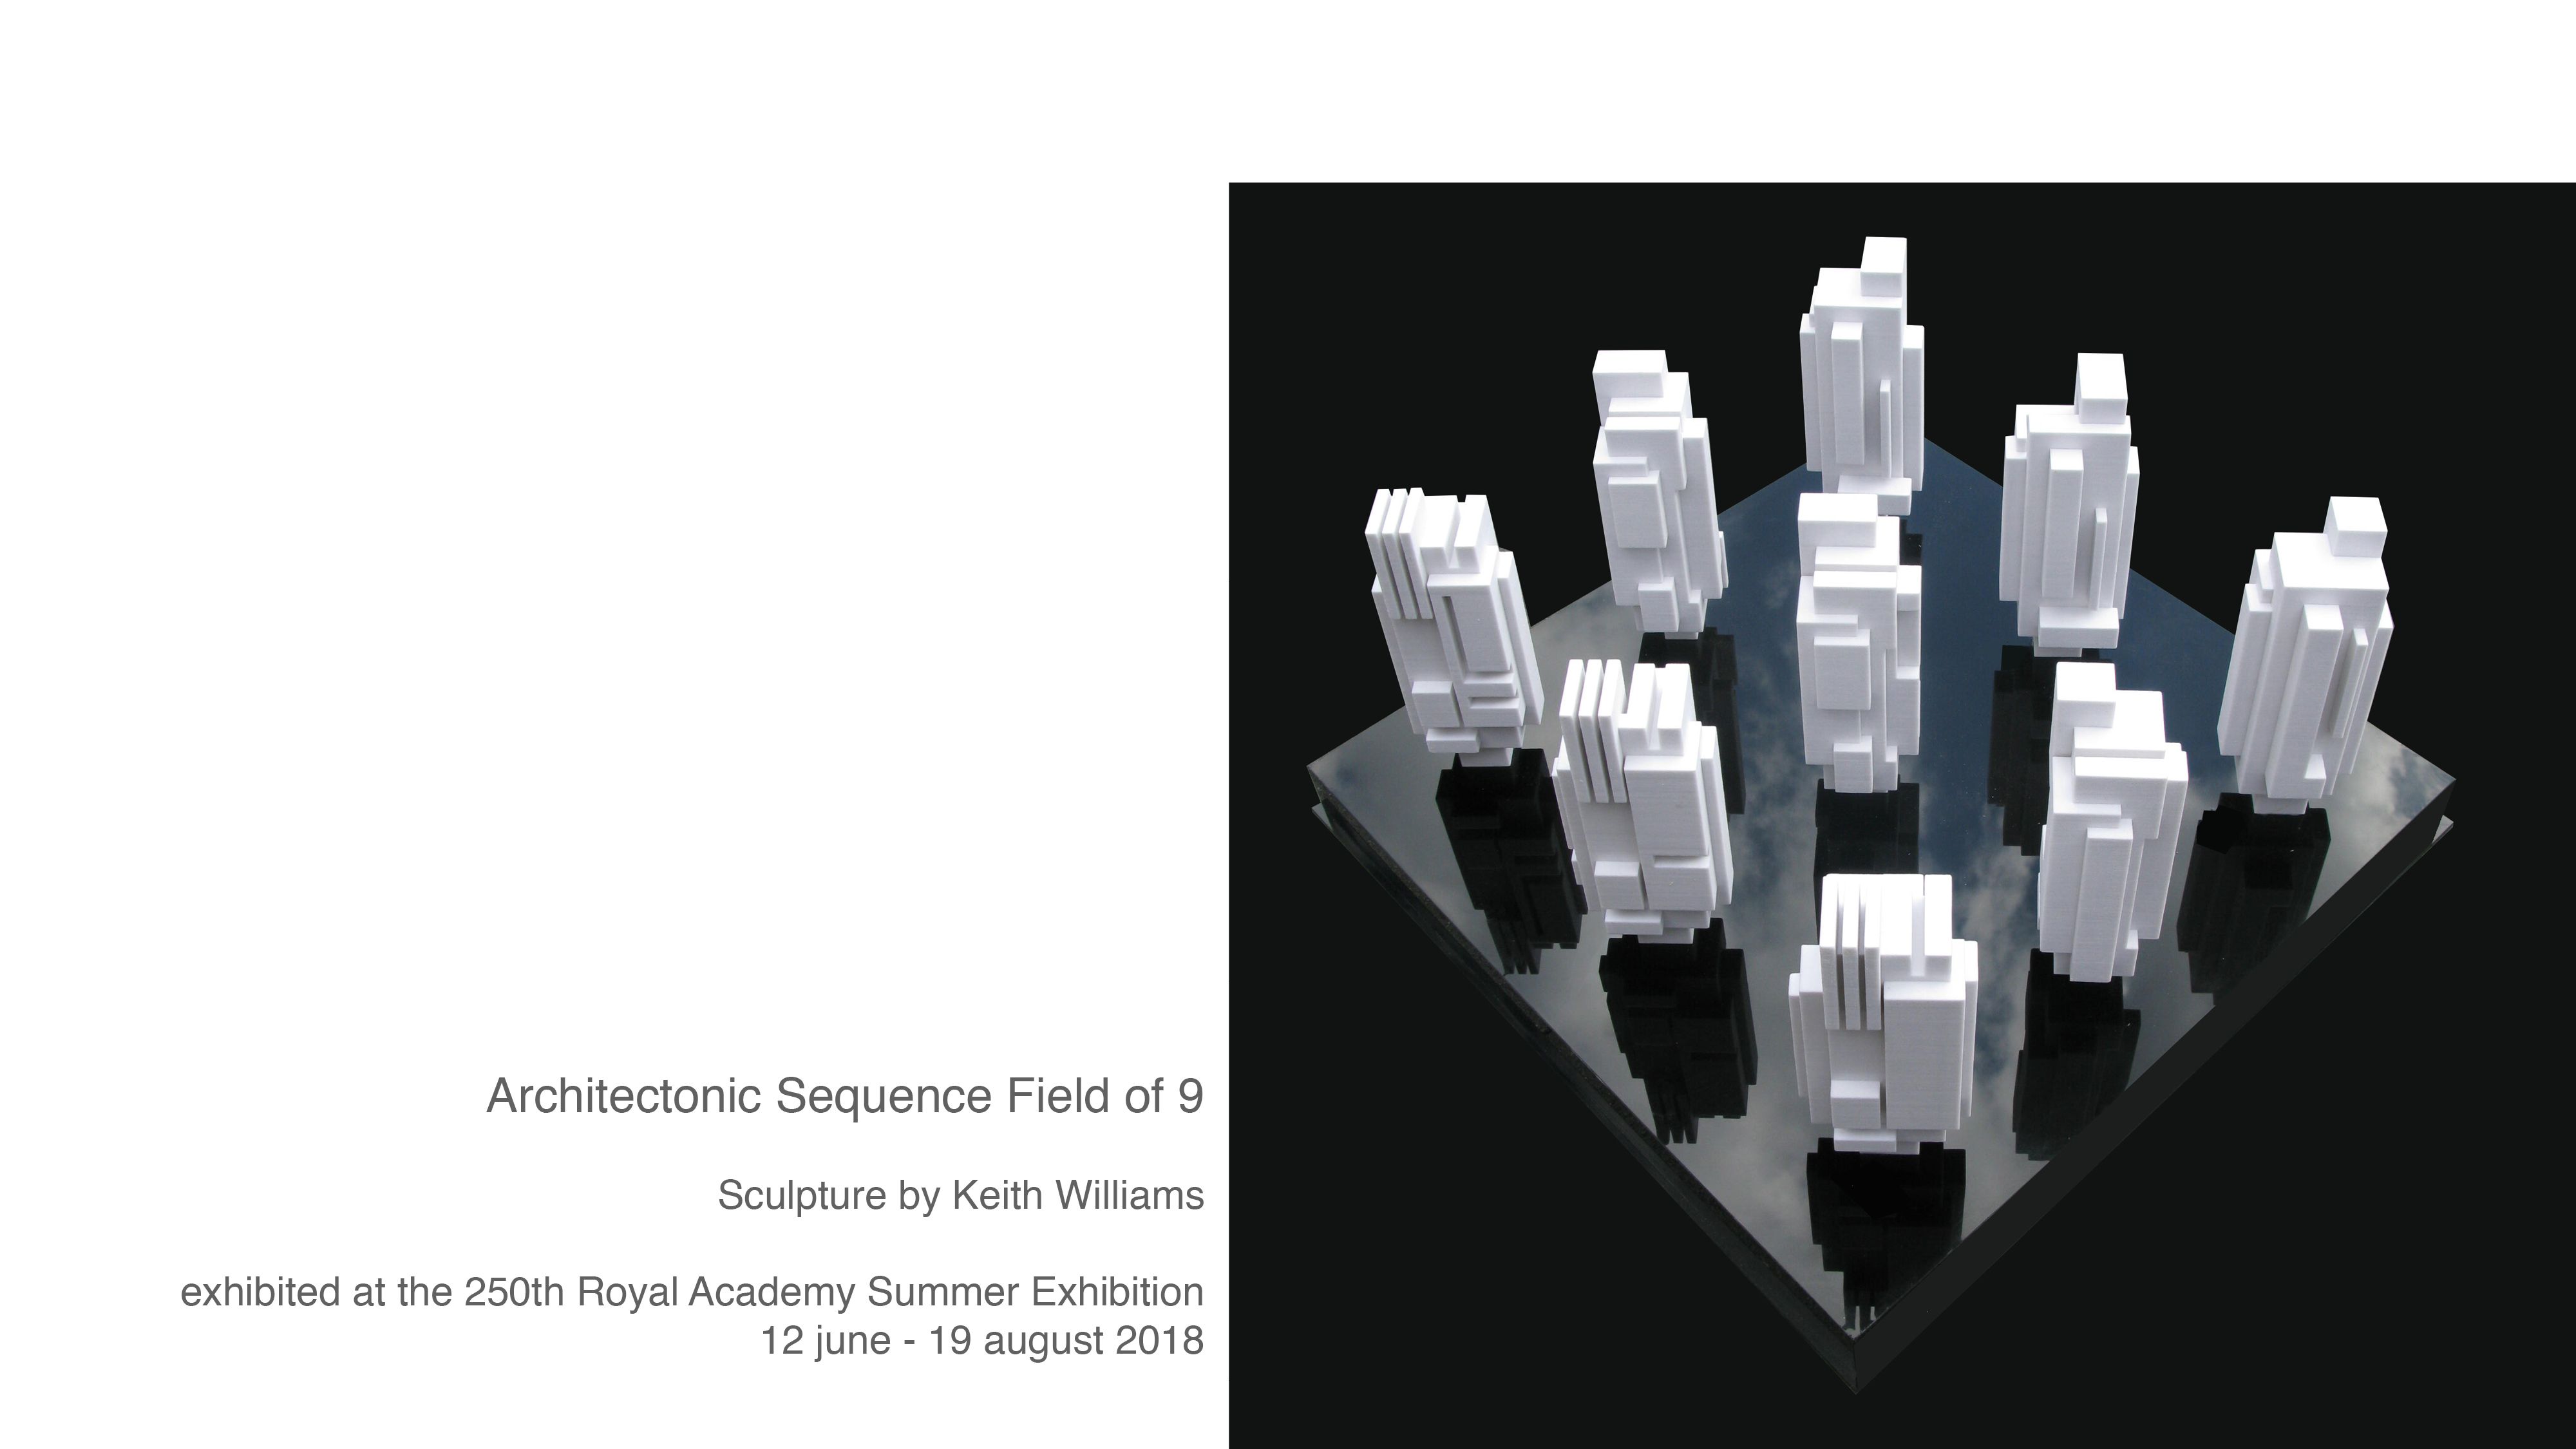 250th Royal Academy Summer Exhibition, Architectonic Sequence: Field of 9